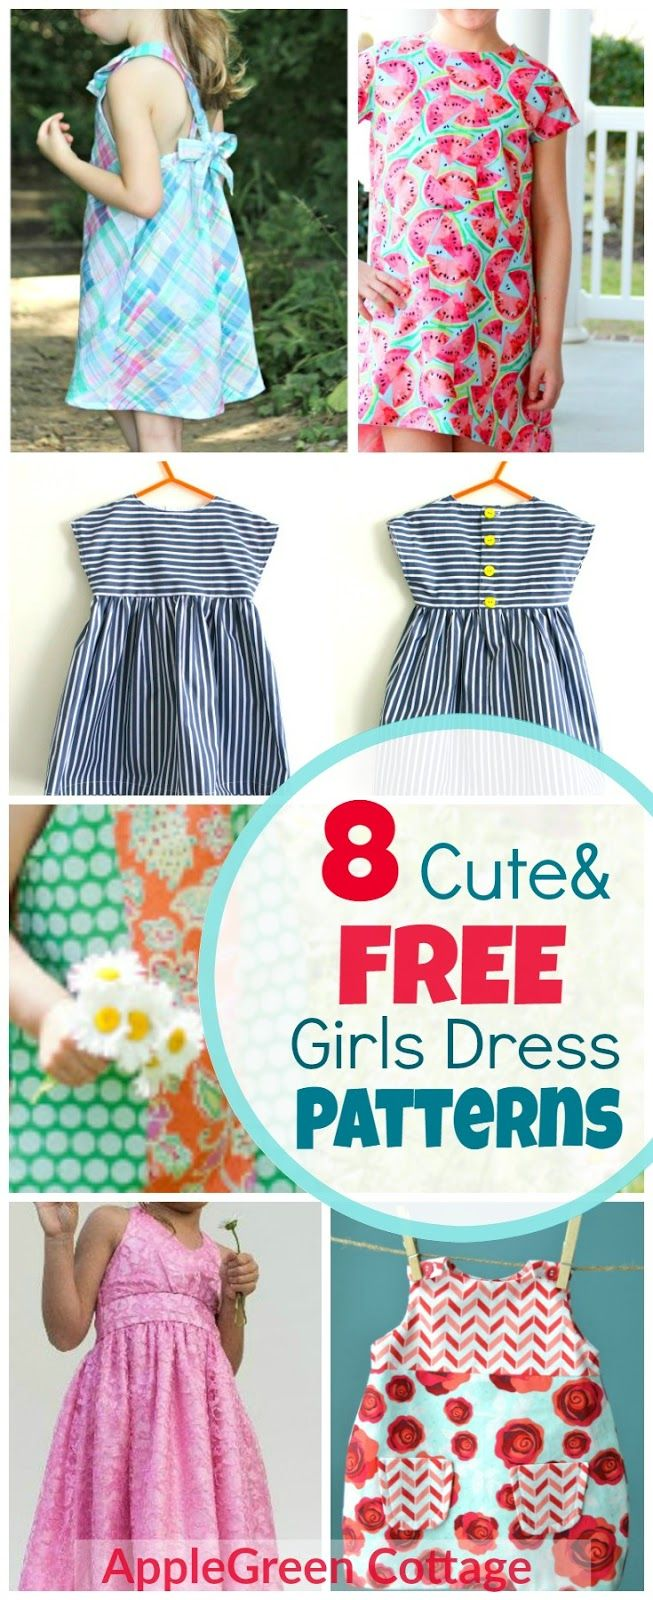 Free girls dresses images